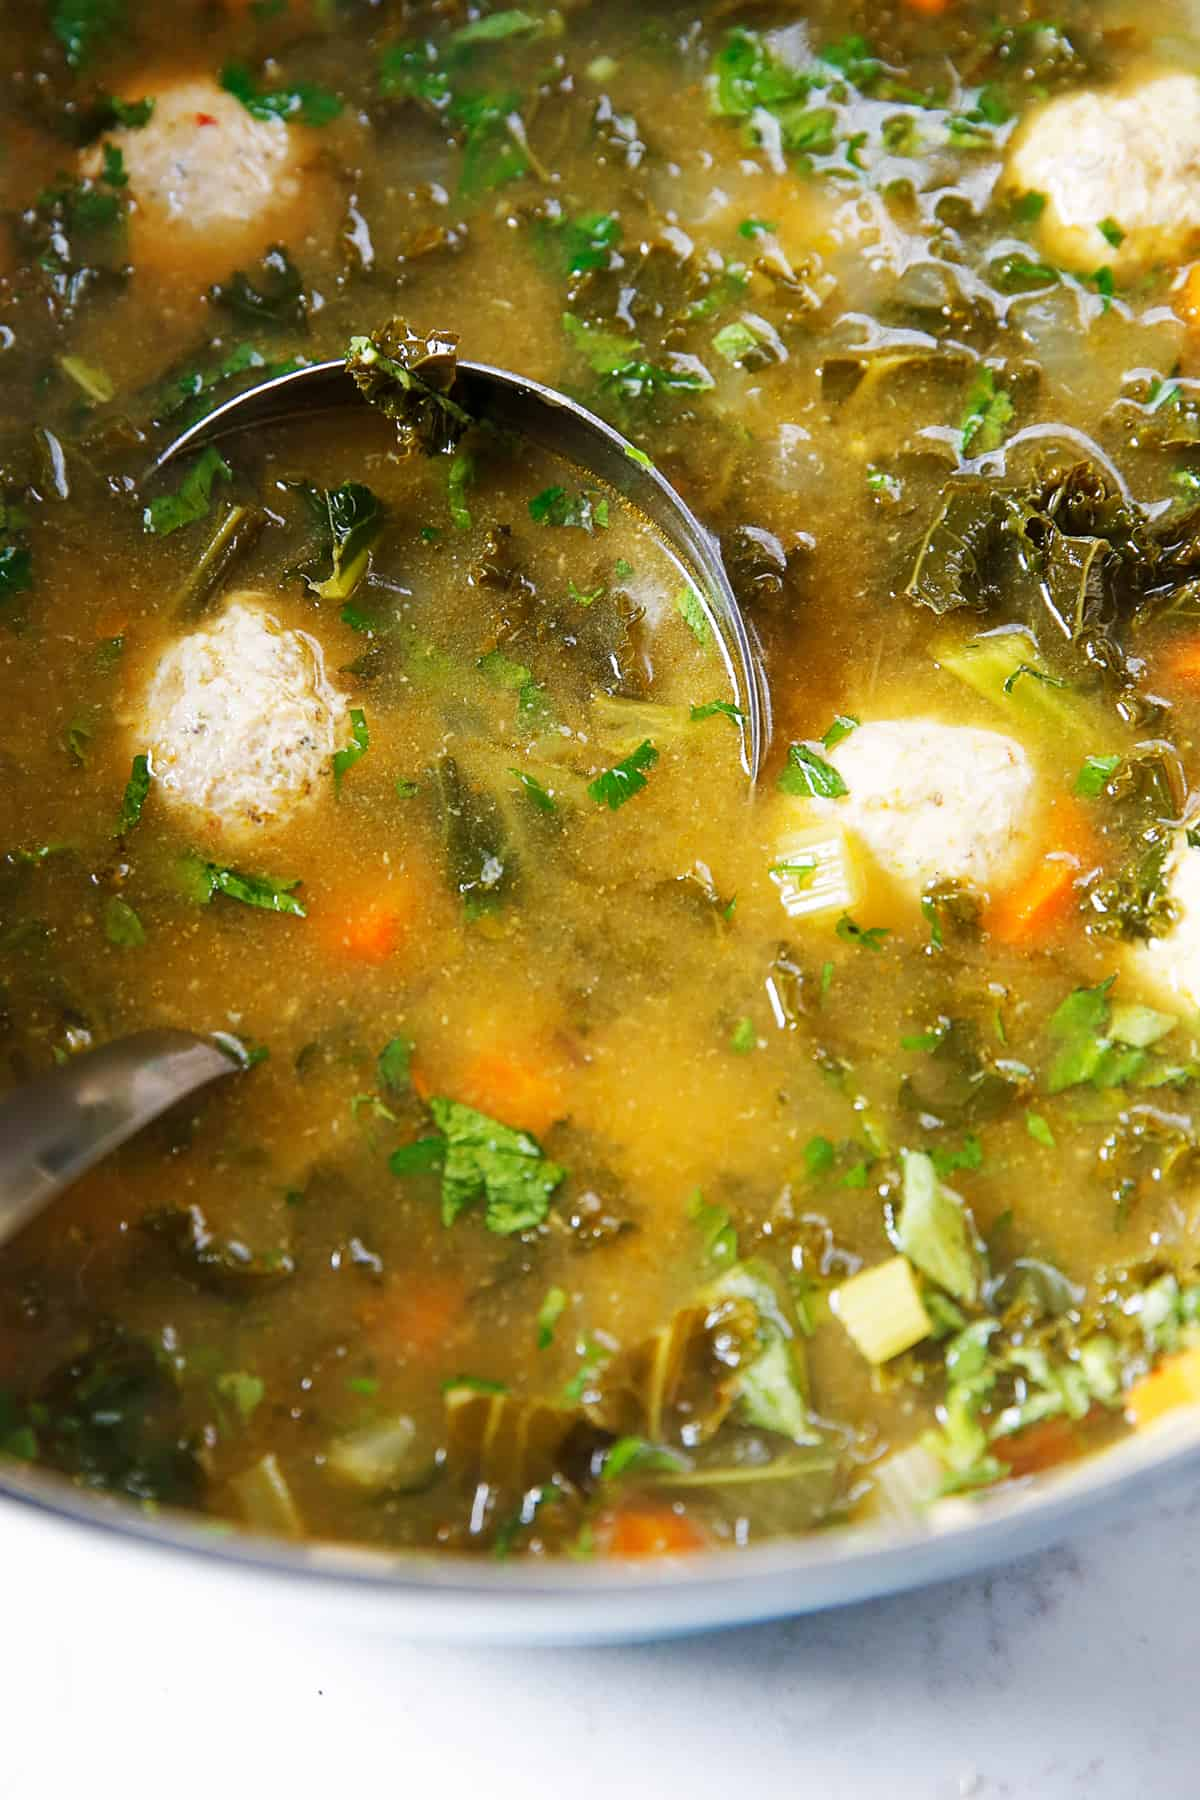 A pot of Italian wedding soup with kale.